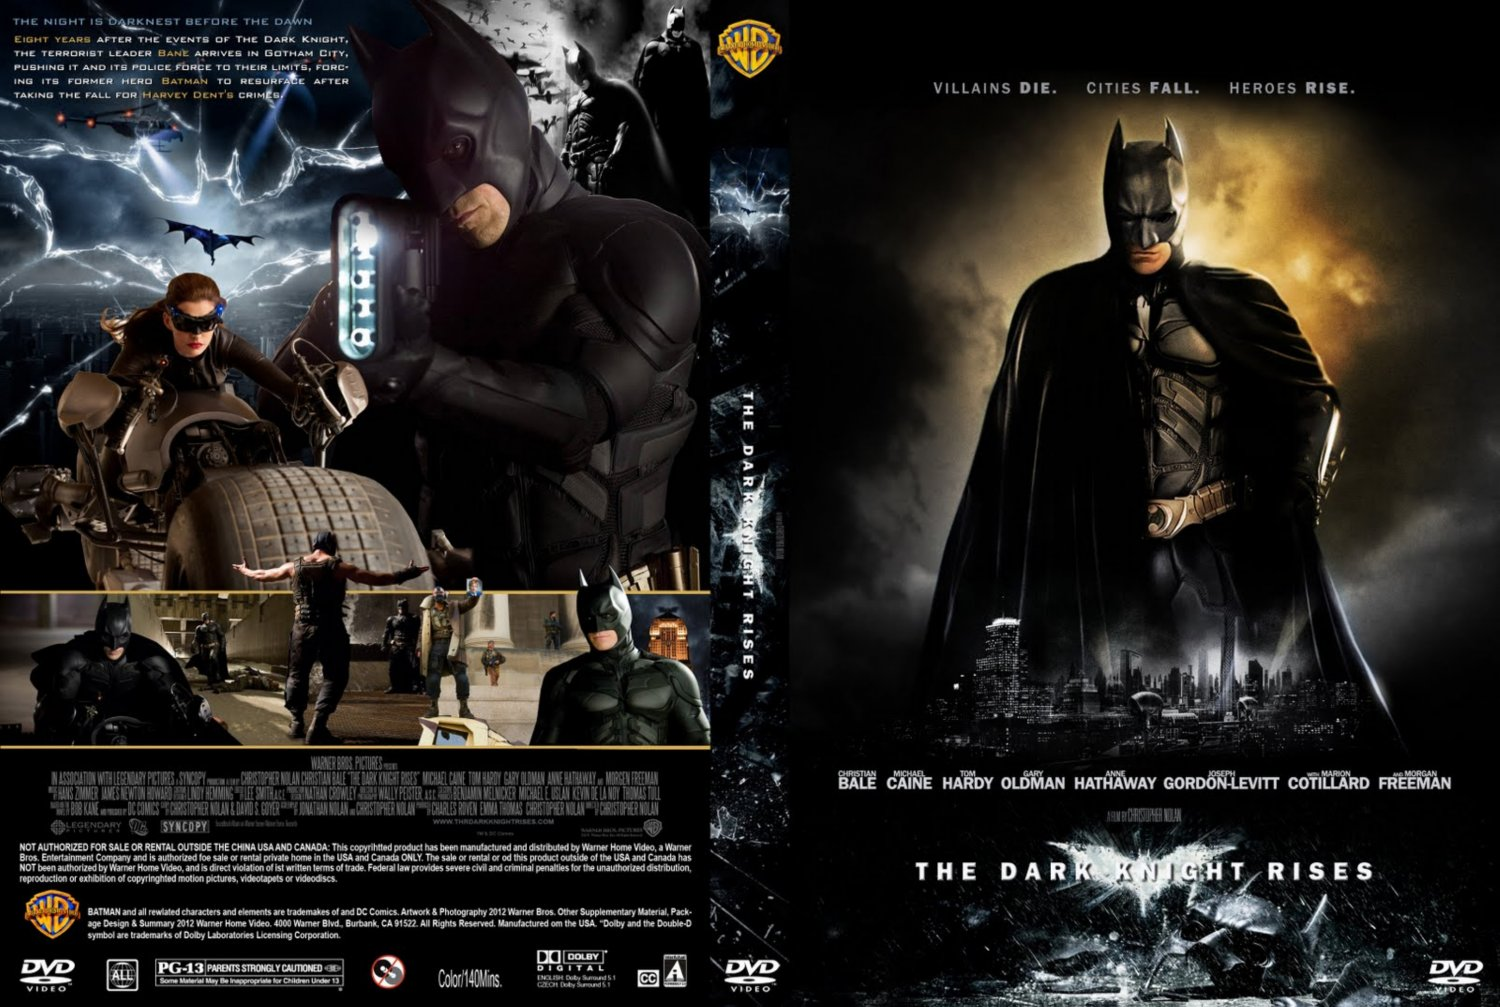 Dark Knight Rises Dvd Cover The Dark Knight Rises